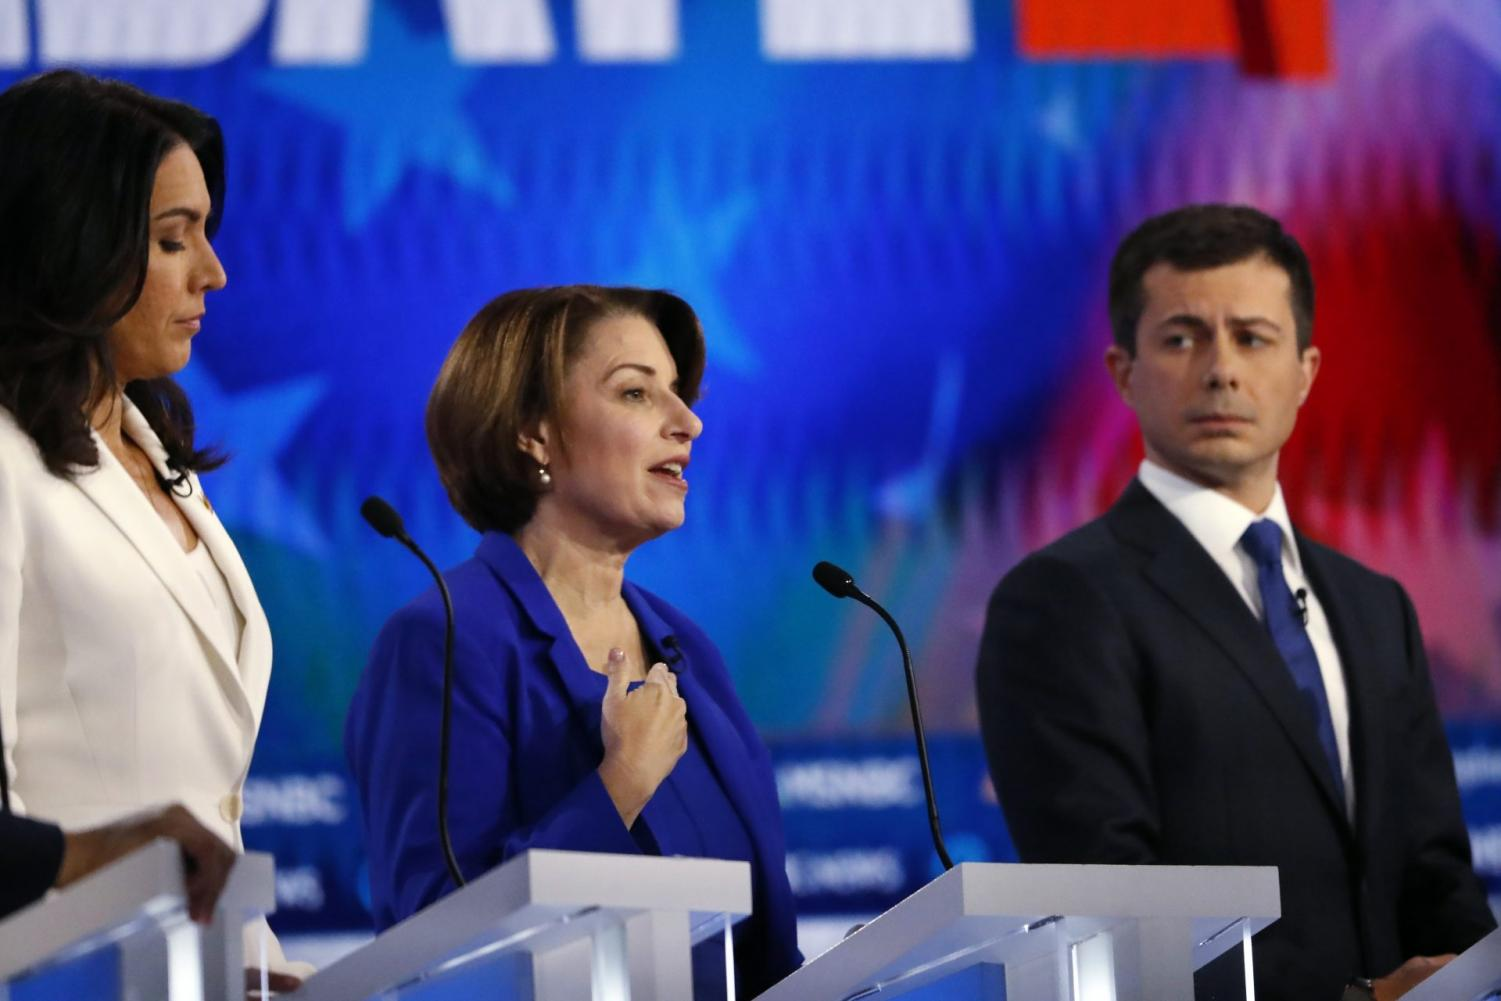 Democratic presidential candidates Rep. Tulsi Gabbard, D-Hawaii, Sen. Amy Klobuchar, D-Minn., and South Bend, Ind., Mayor Pete Buttigieg, from left, participate in a Democratic presidential primary debate, Wednesday, Nov. 20, 2019, in Atlanta.